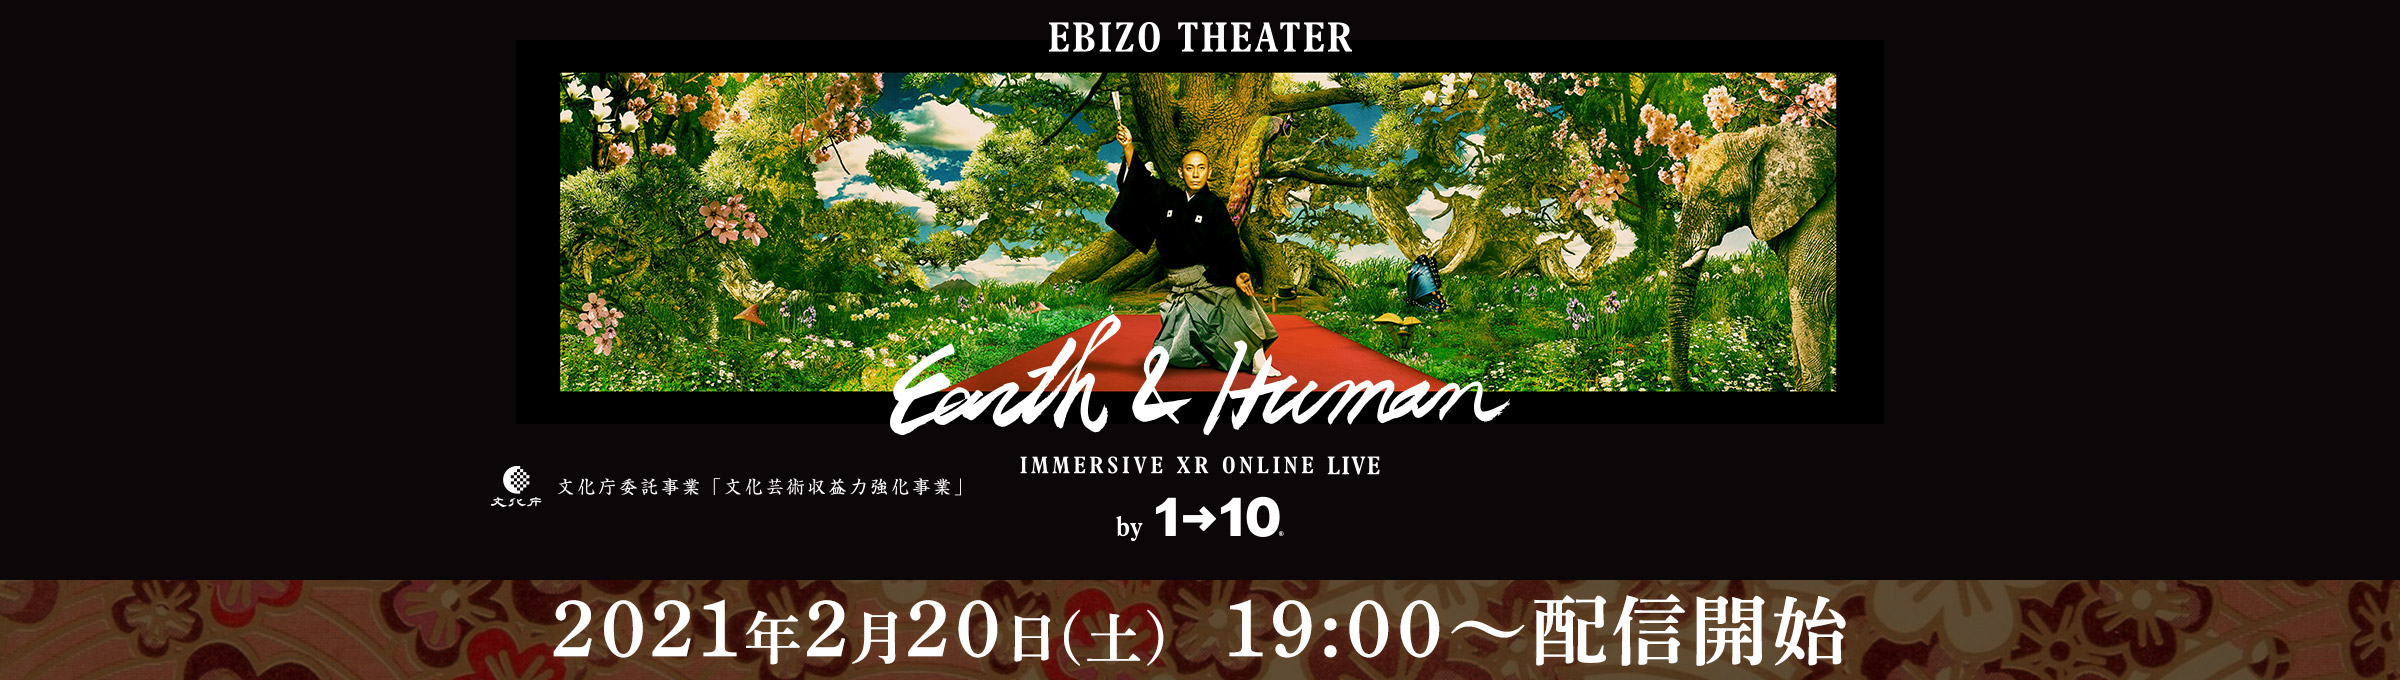 EBIZO THEATER  NPO法人設立記念公演 「Earth & Human」by 1→10